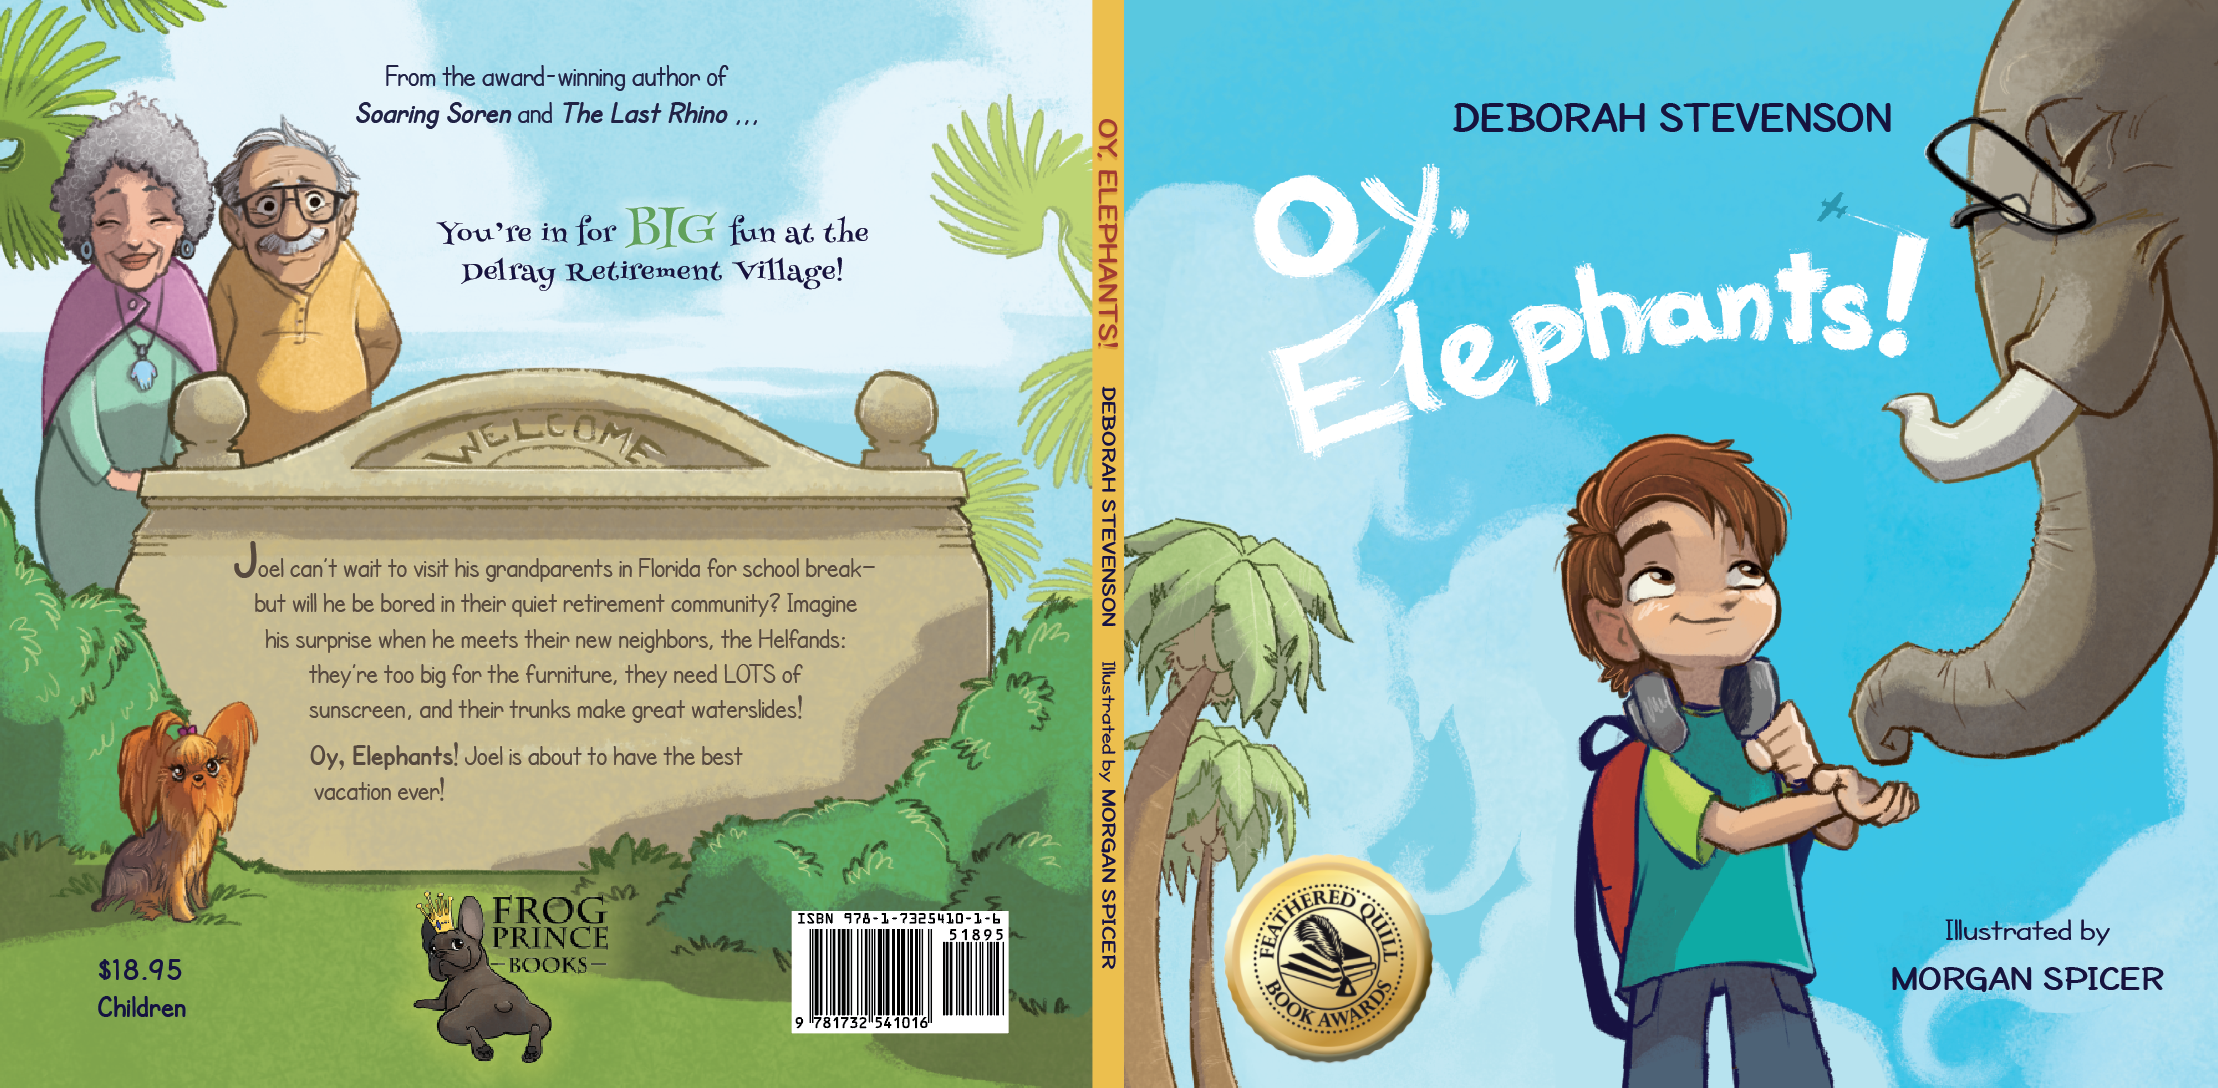 by DEBORAH STEVENSON illustrated by MORGAN SPICER published by Frog Prince Books